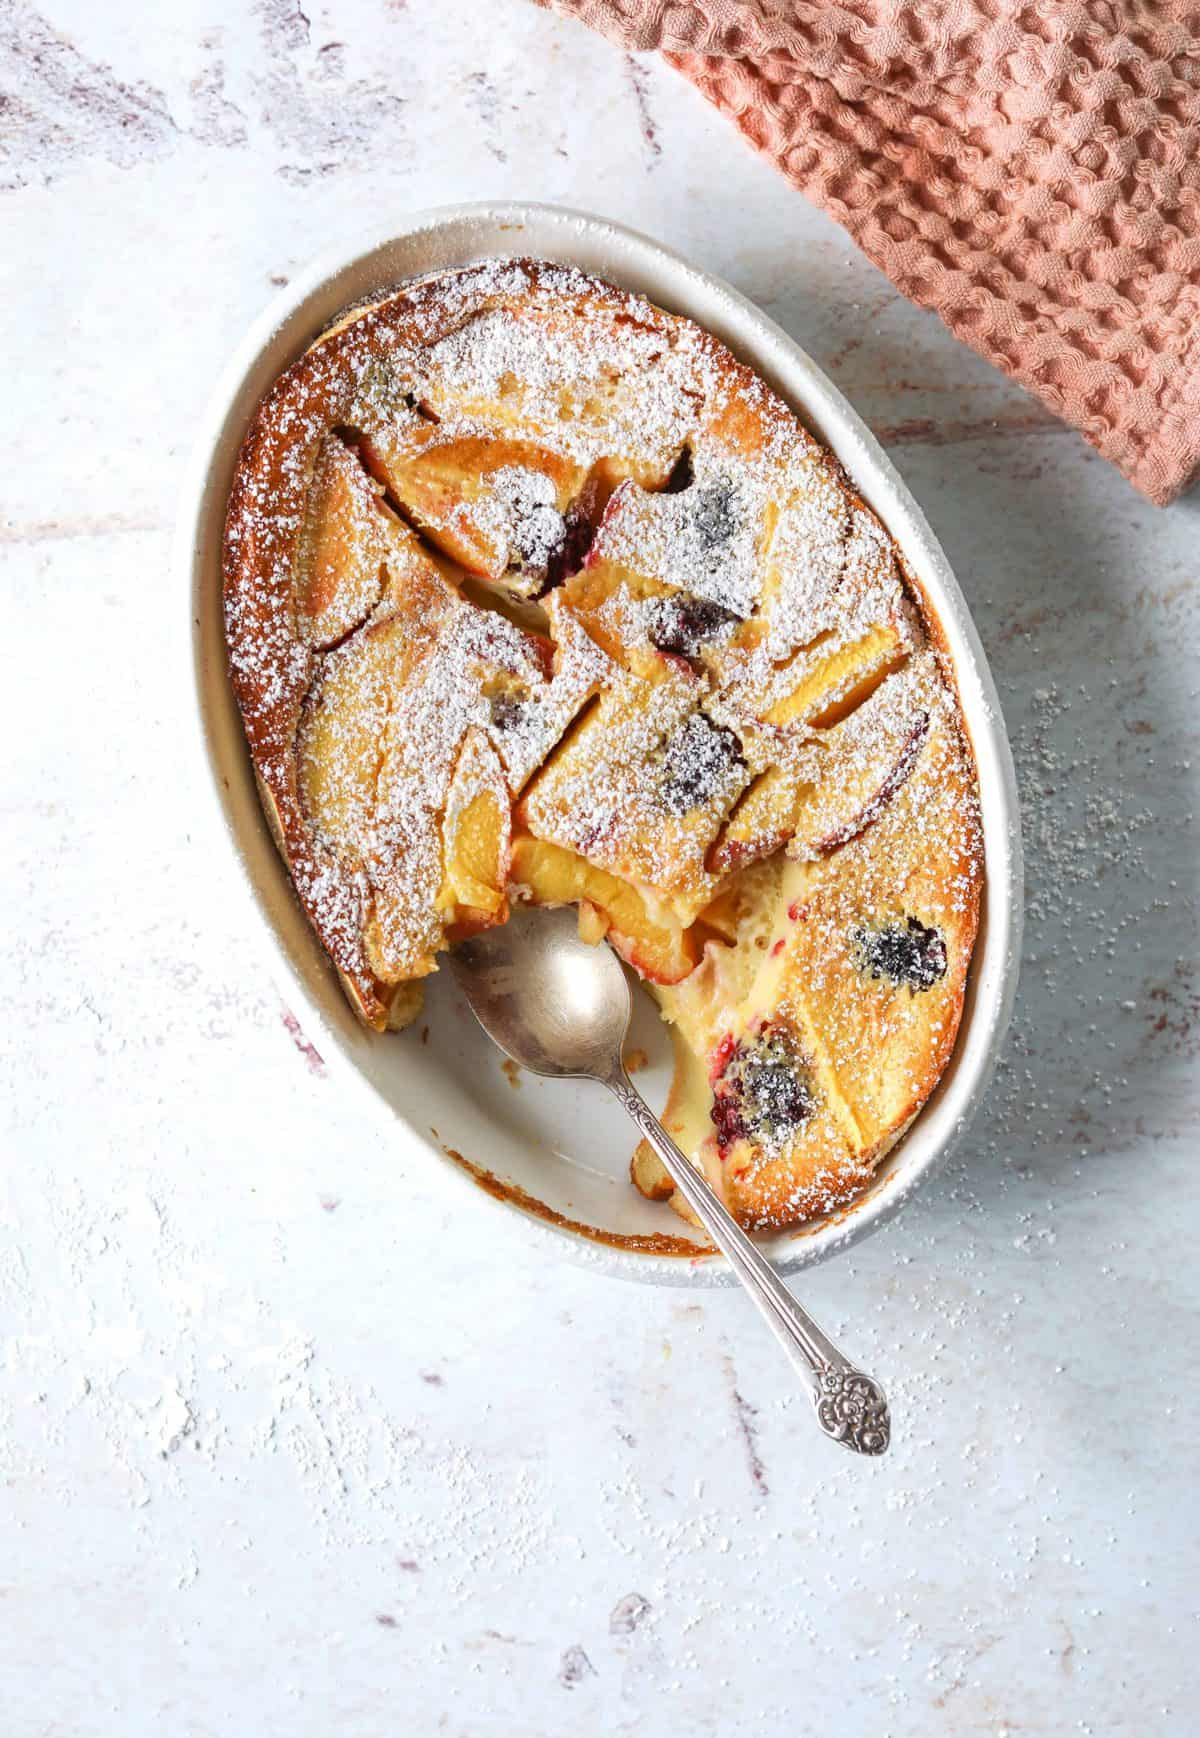 A white oval baking dish filled with Stone Fruit Clafoutis with a silver spoon.